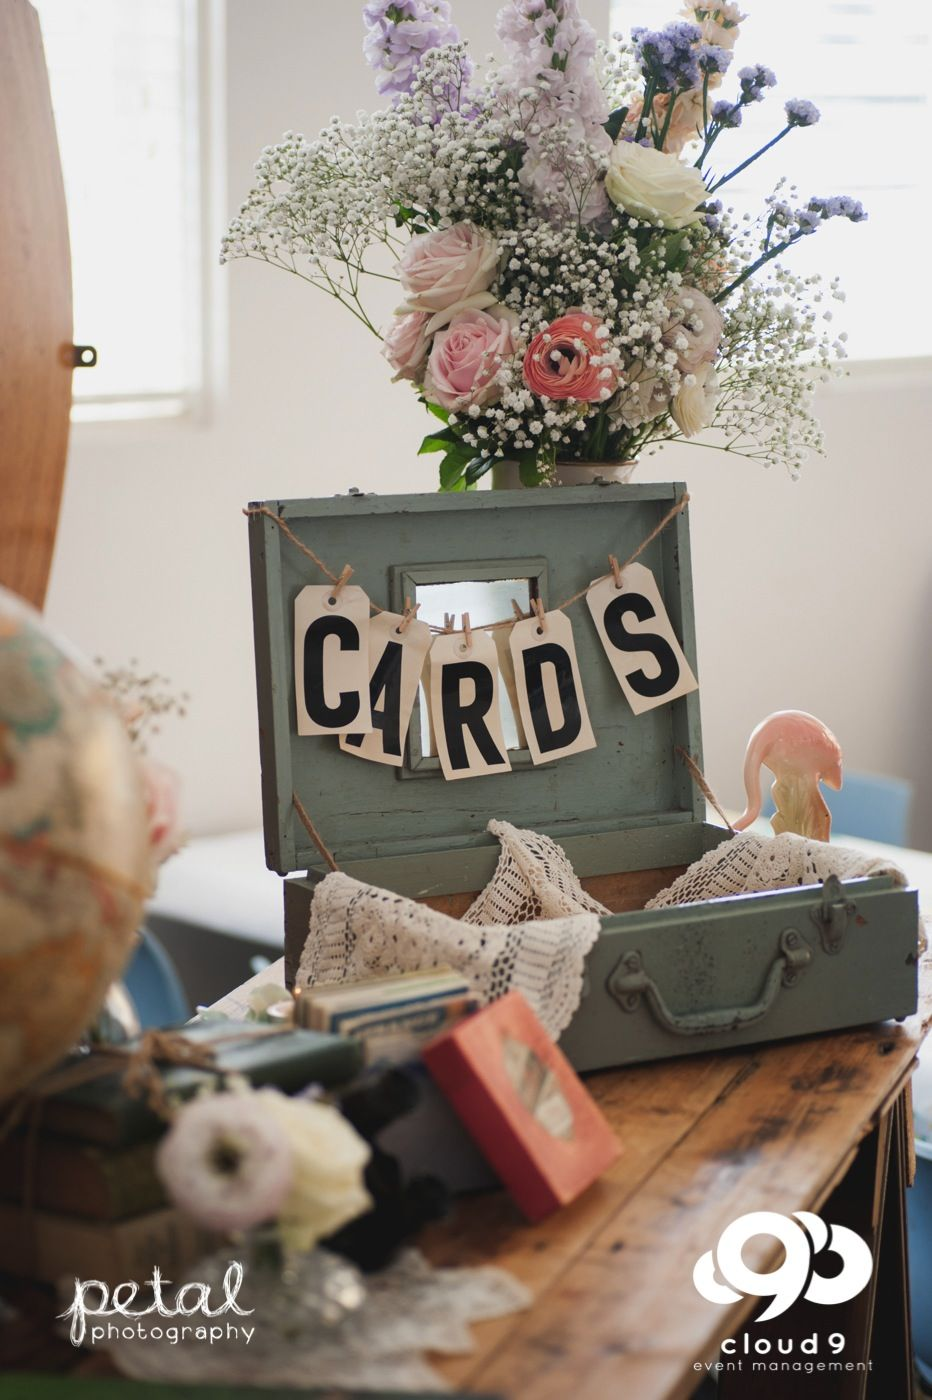 Wishing Well Vintage suitcase and cards on twine with pastel flowers for a vintage inspired wedding